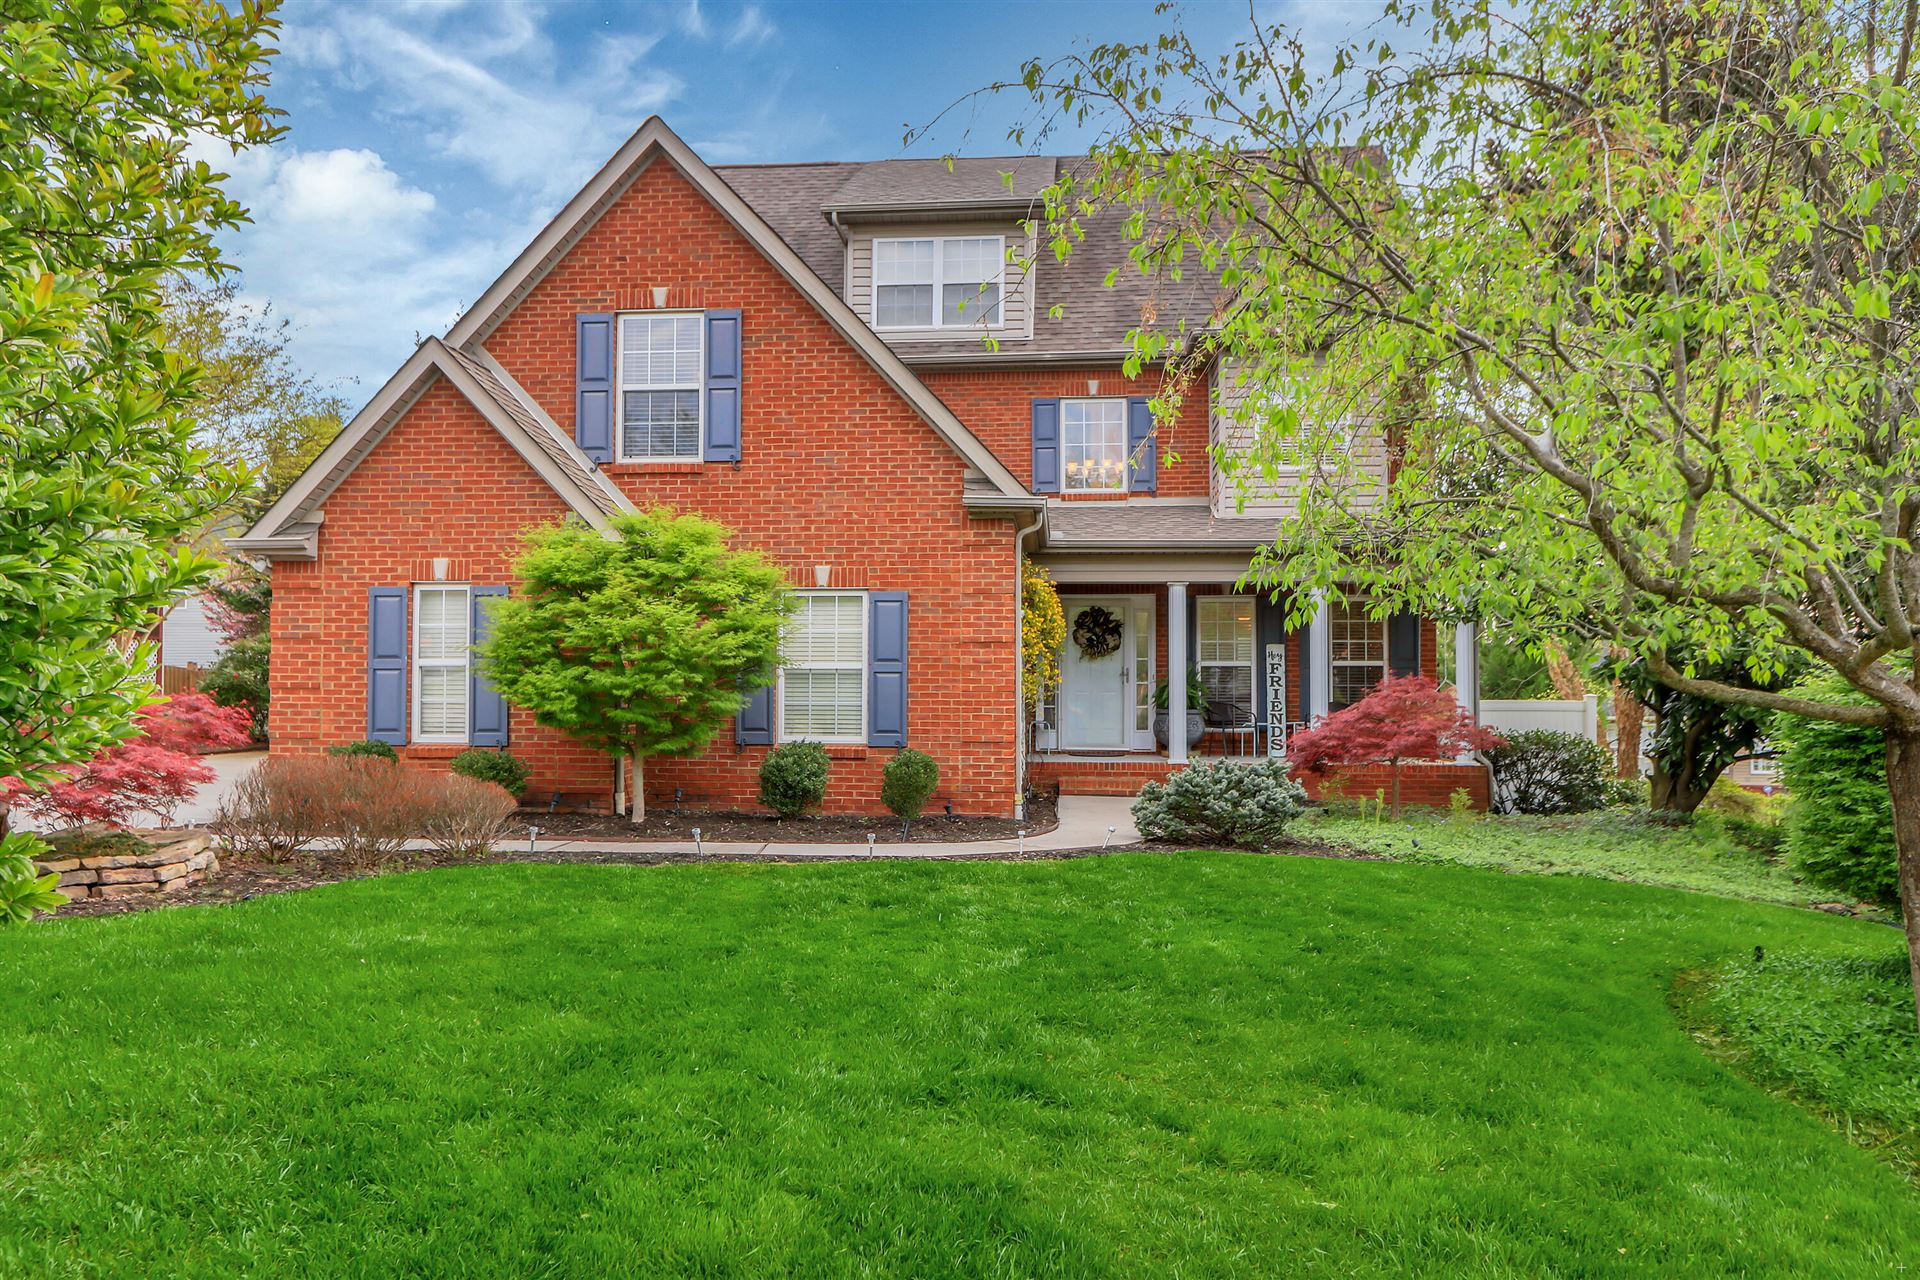 Photo of 12944 Peach View Drive, Knoxville, TN 37922 (MLS # 1148958)